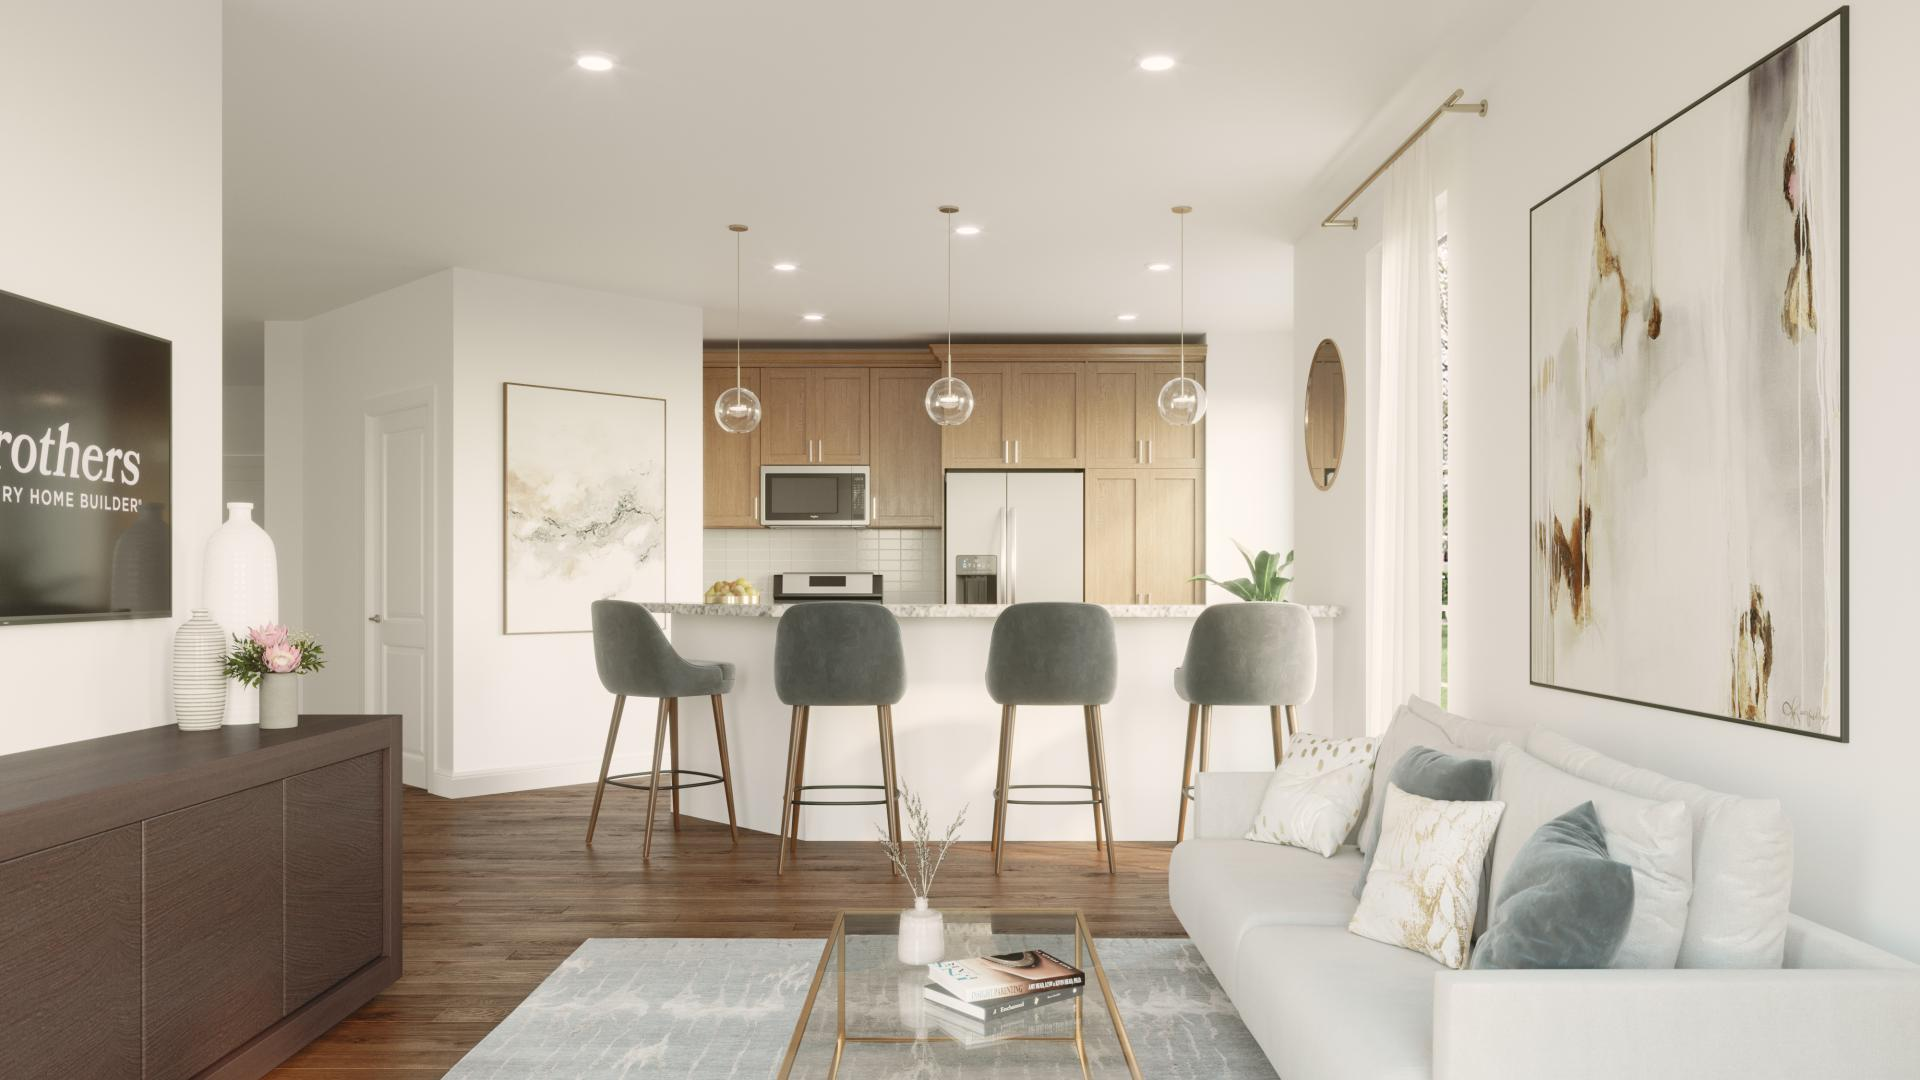 Open concept living provides seamless flow from kitchen to living room